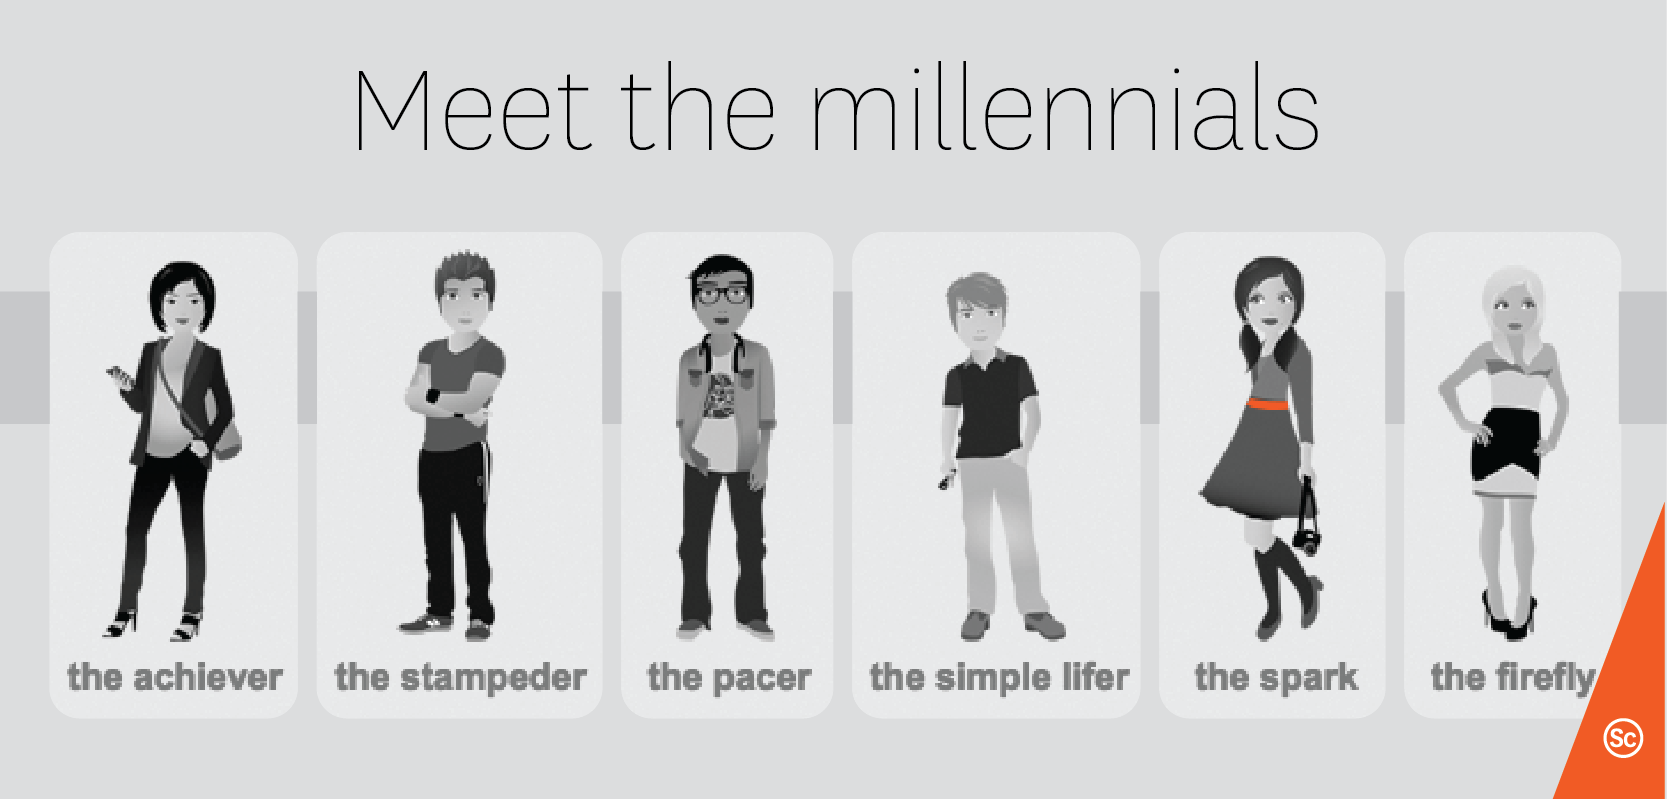 Here's how to gear your event marketing toward millennials.